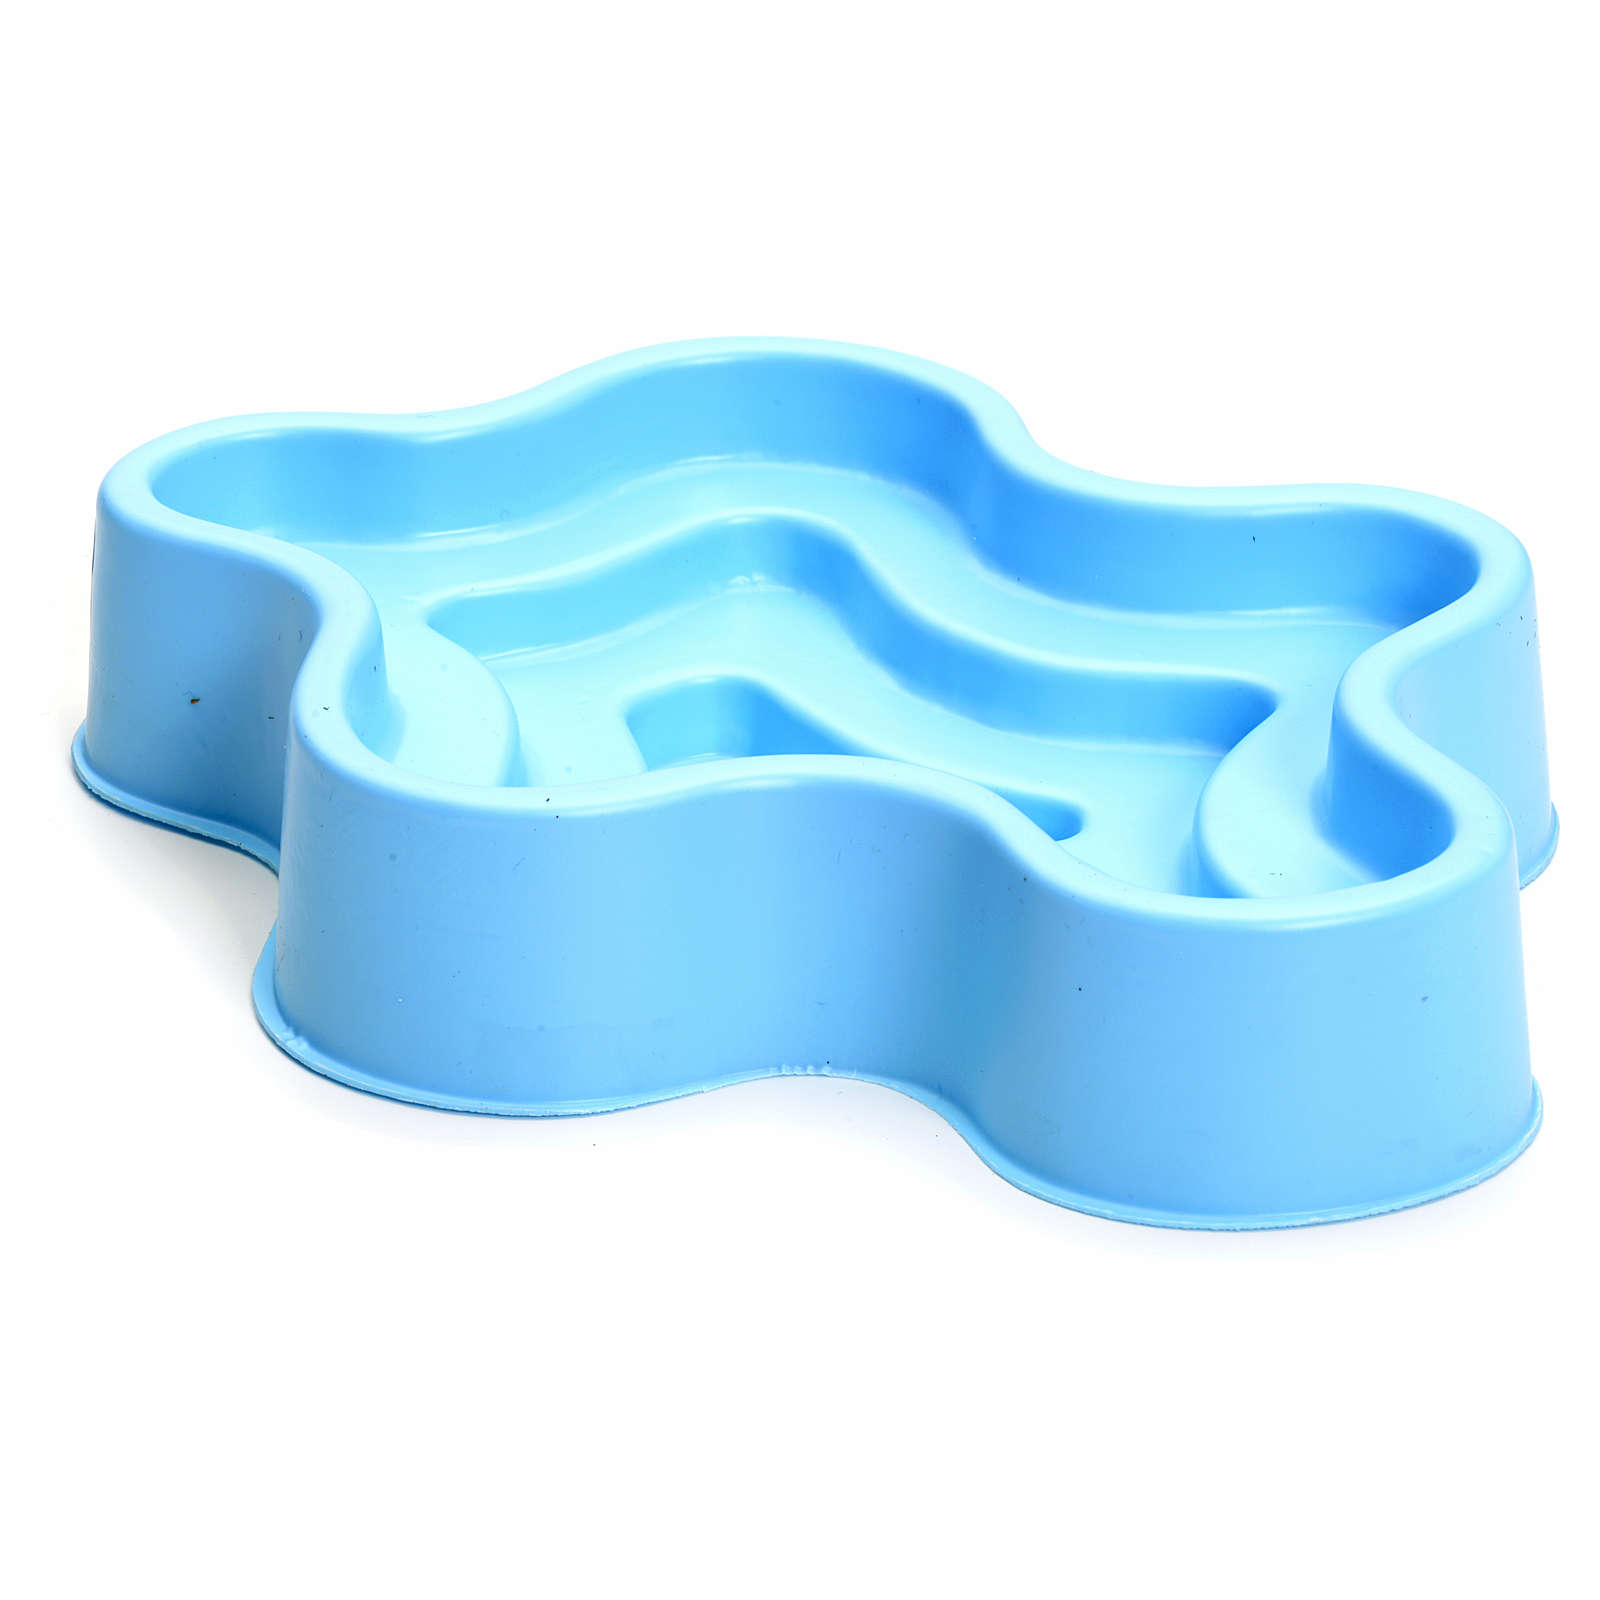 Nativity accessory, blue plastic pond 4